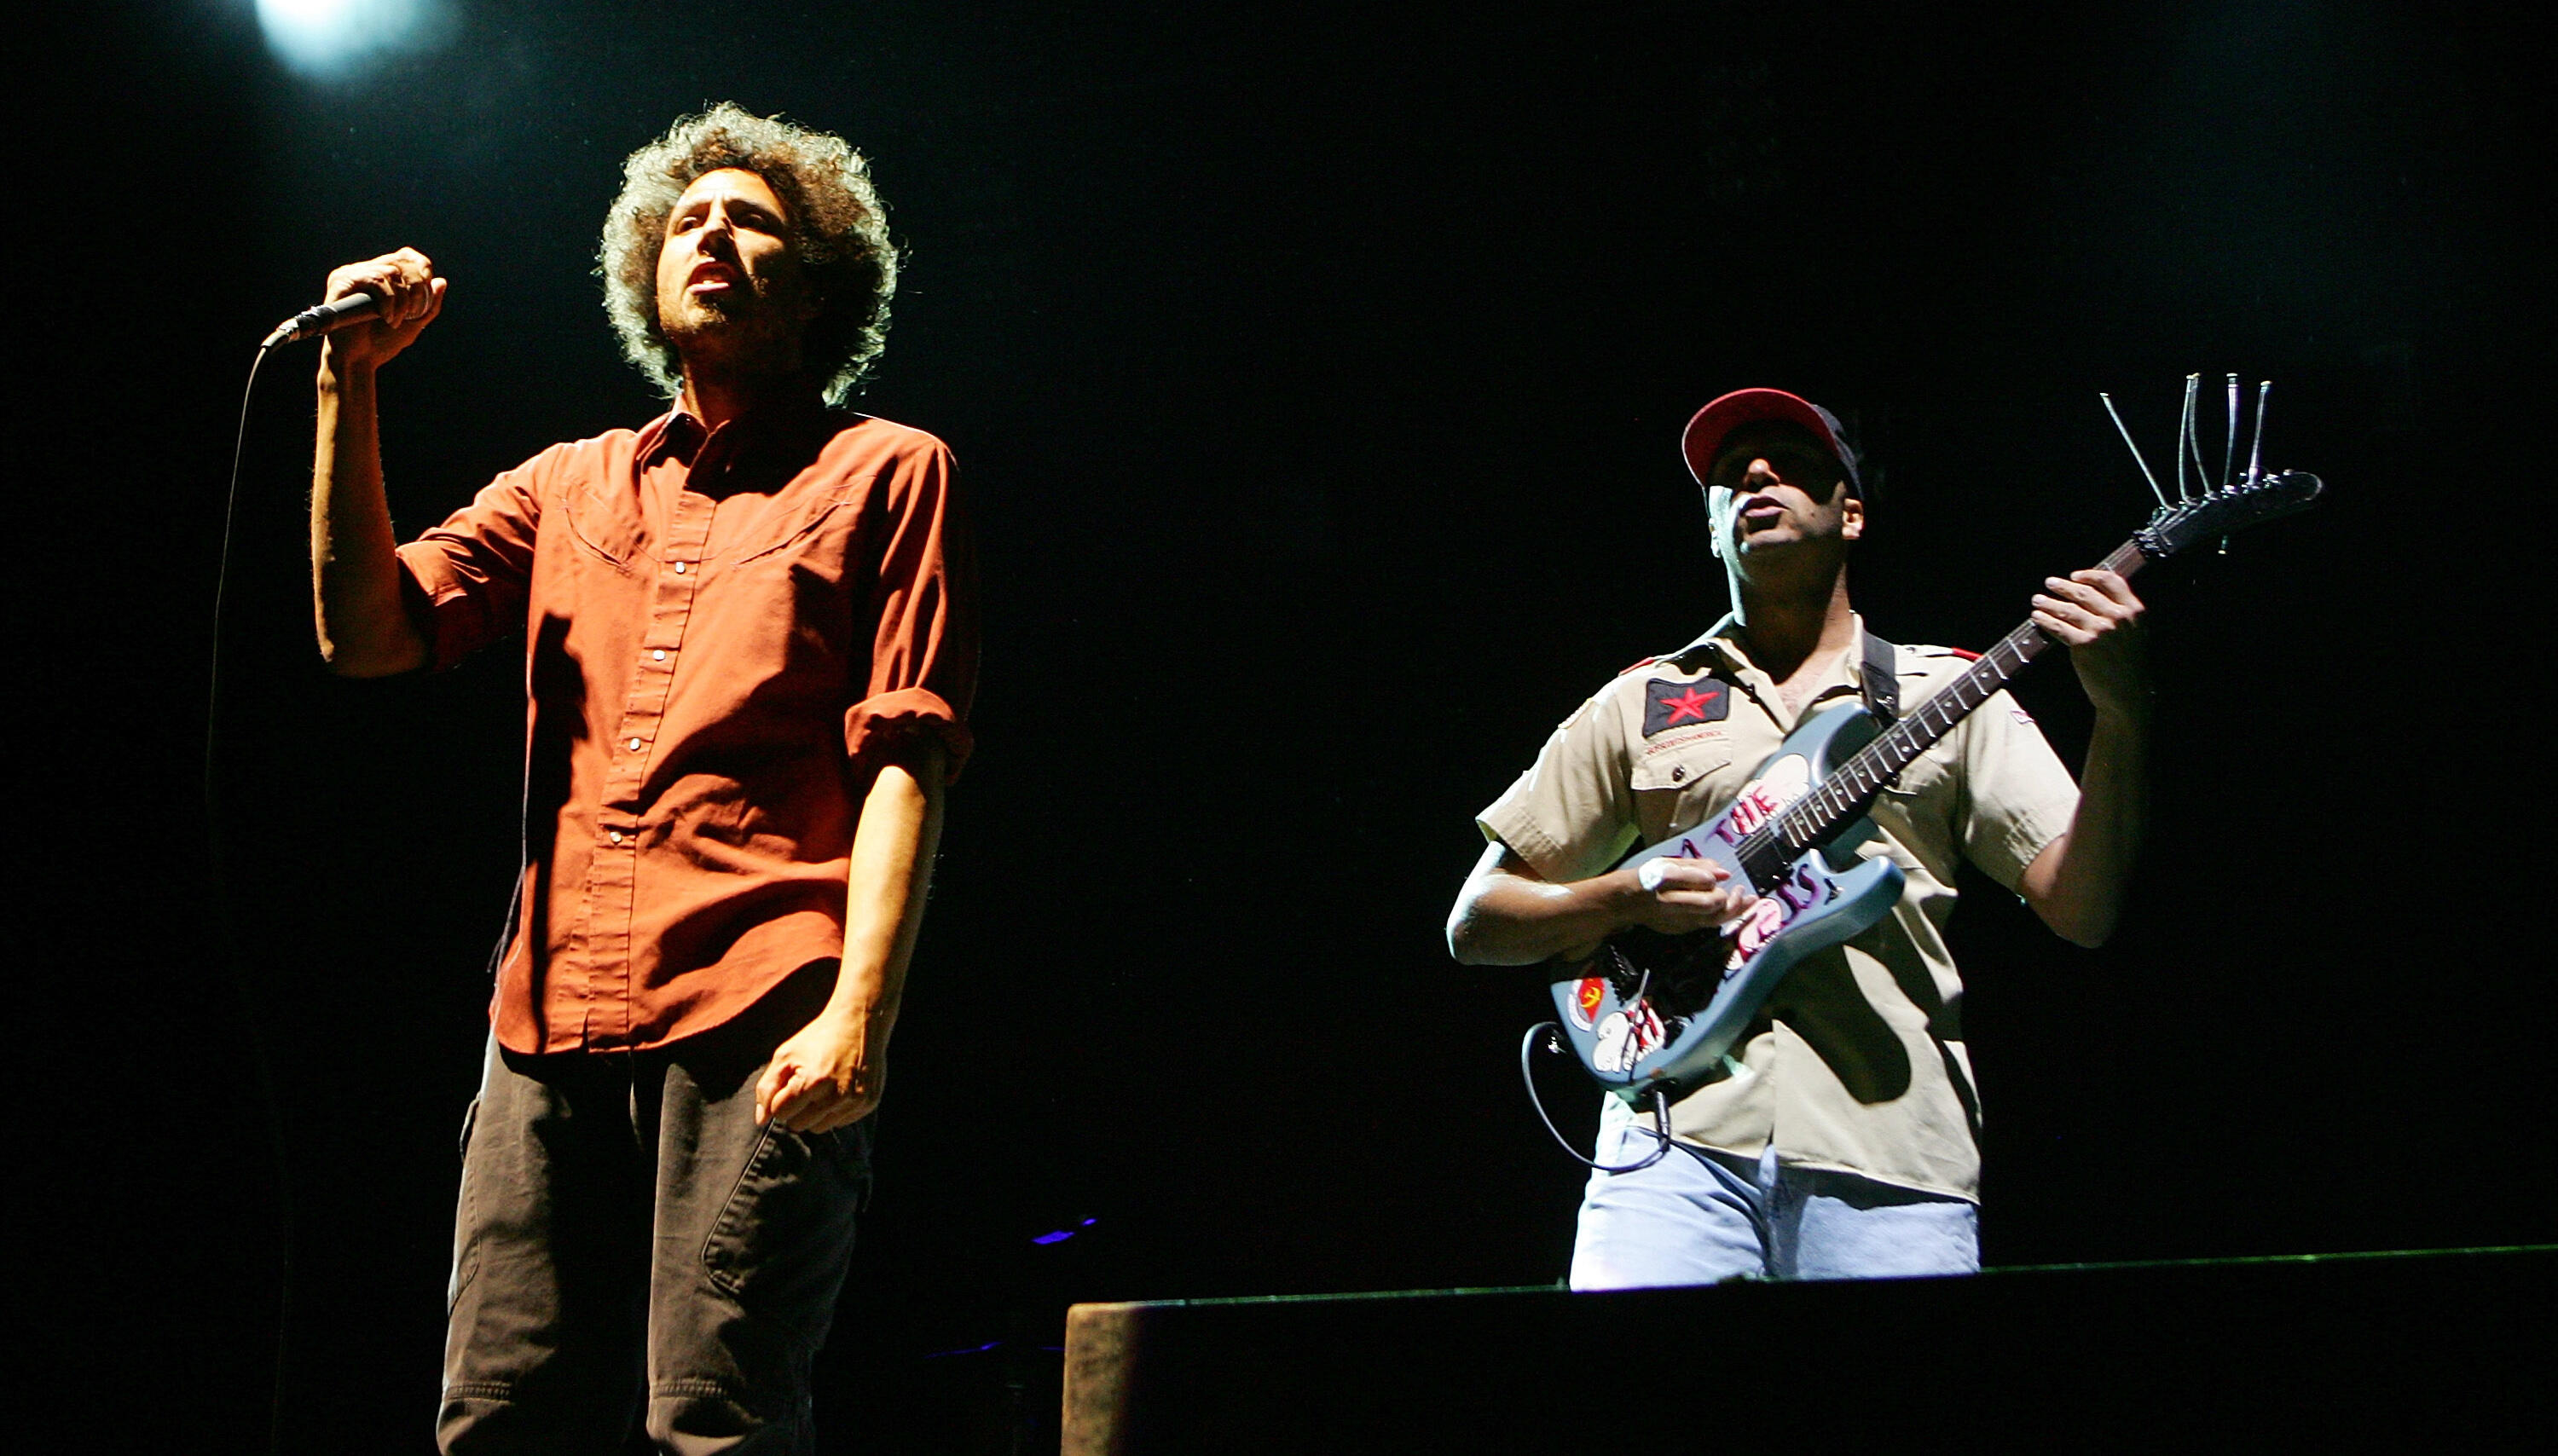 Tom Morello On Why He Was So Surprised By RATM's Success